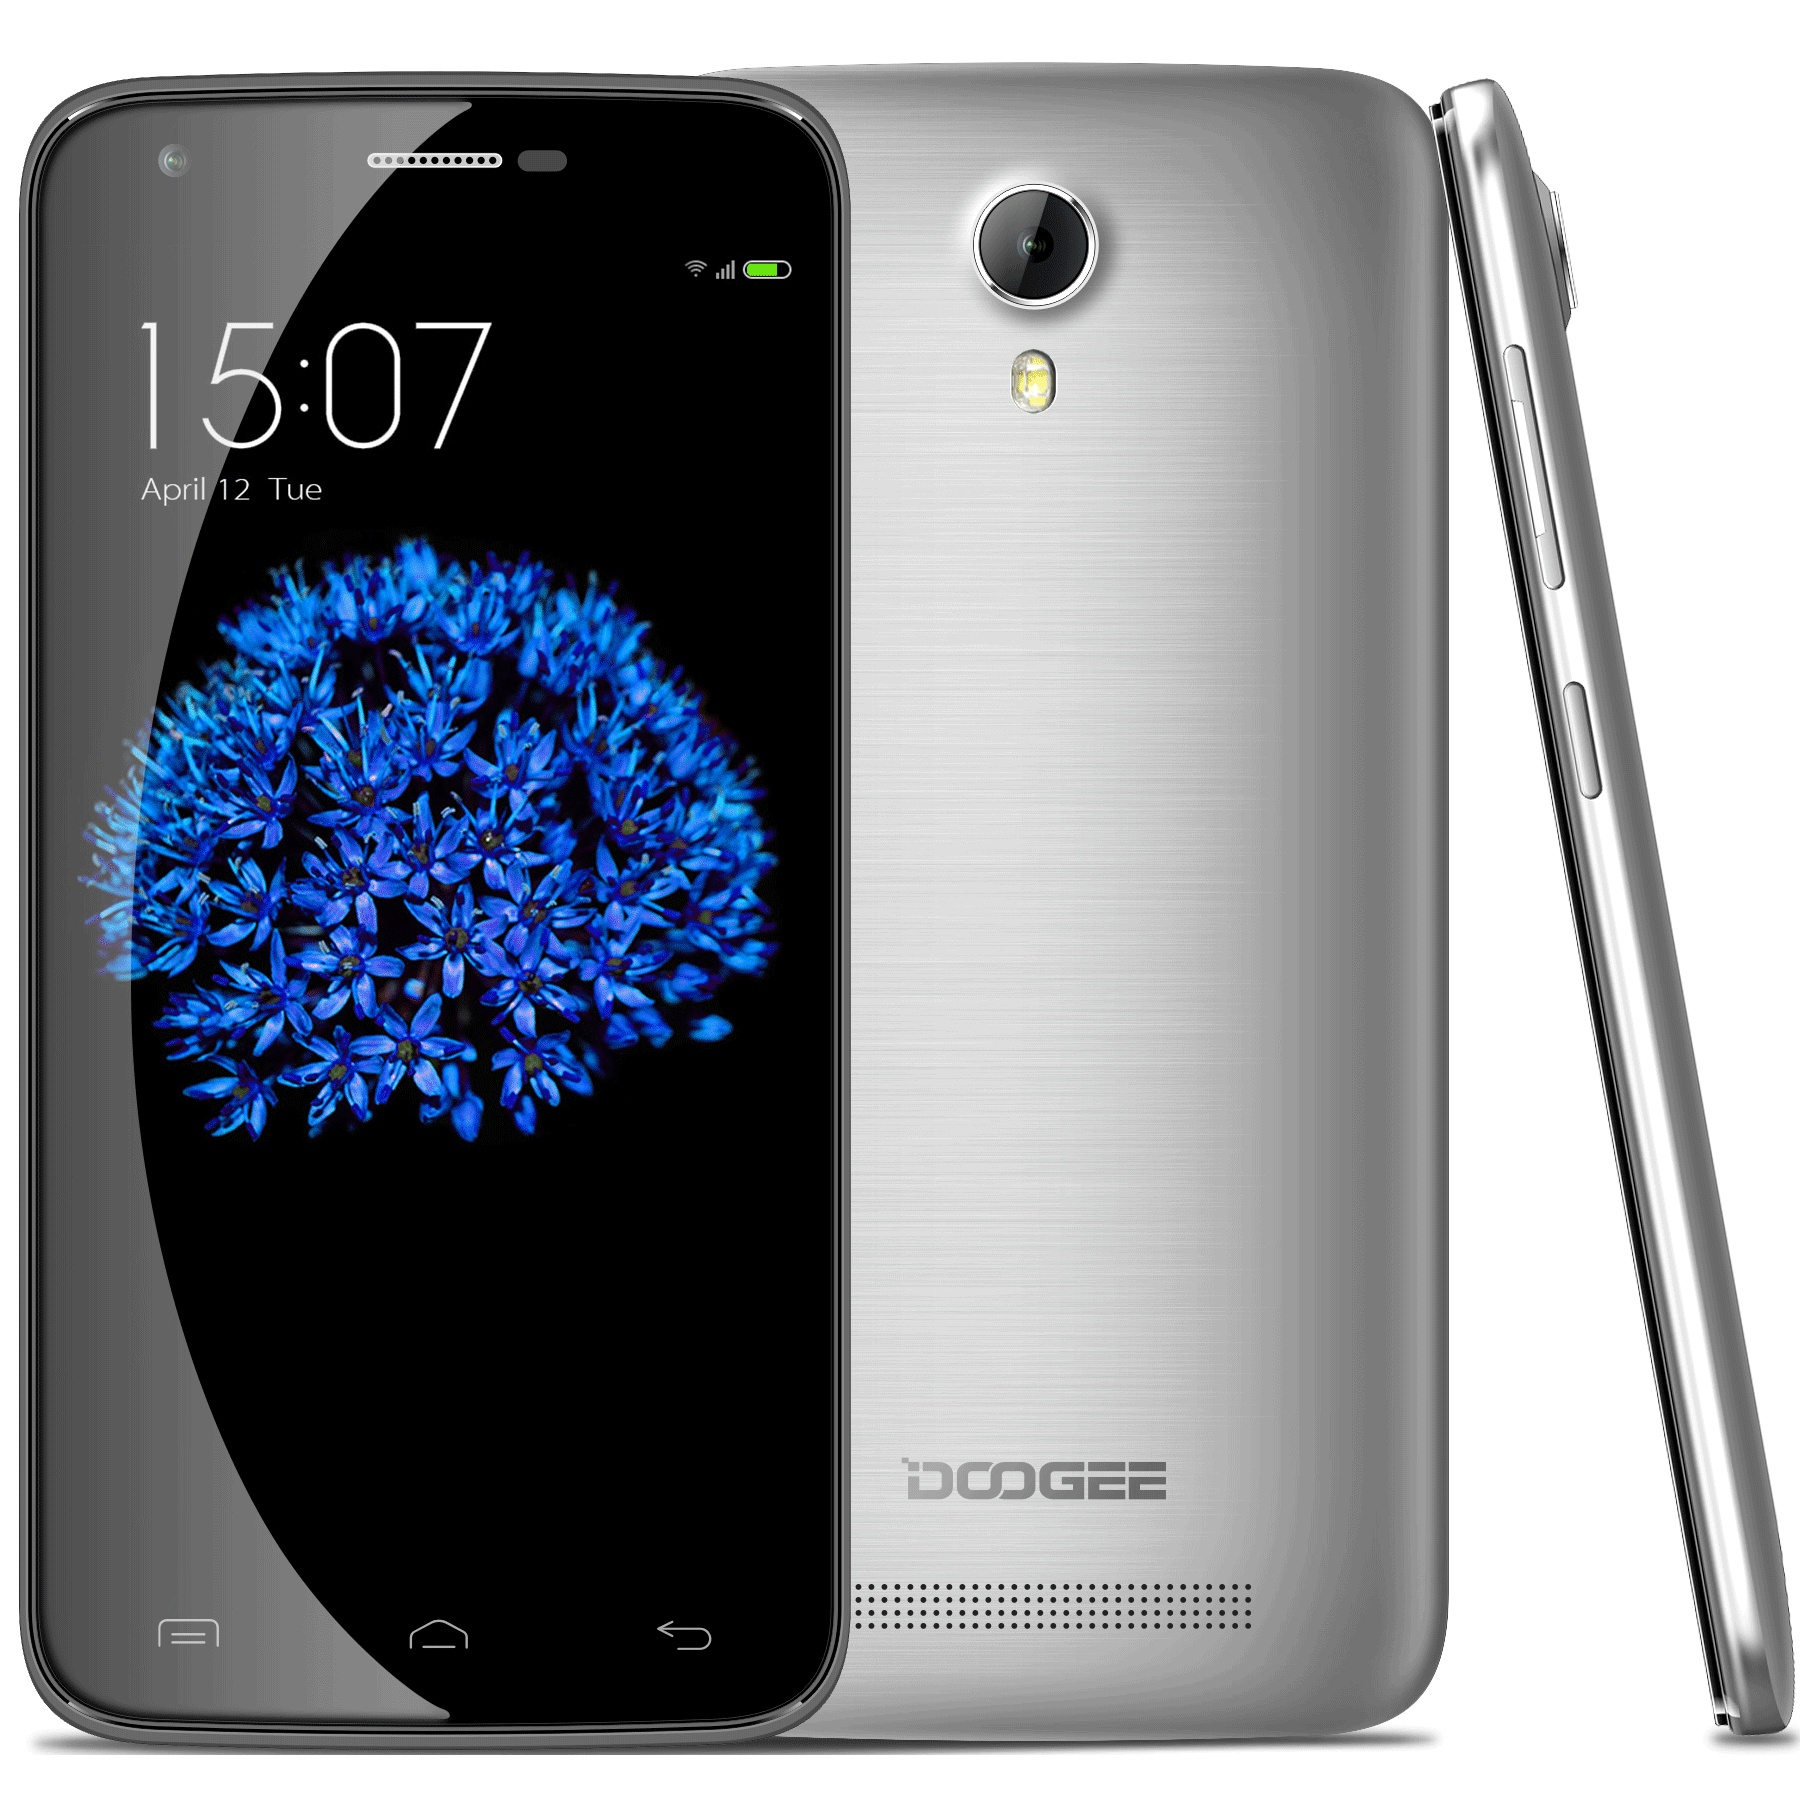 DOOGEE VALENCIA2 Y100 Pro Smartphone 5.0 Inch 4G MTK6735P Android 5.1 2GB 16GB Silver